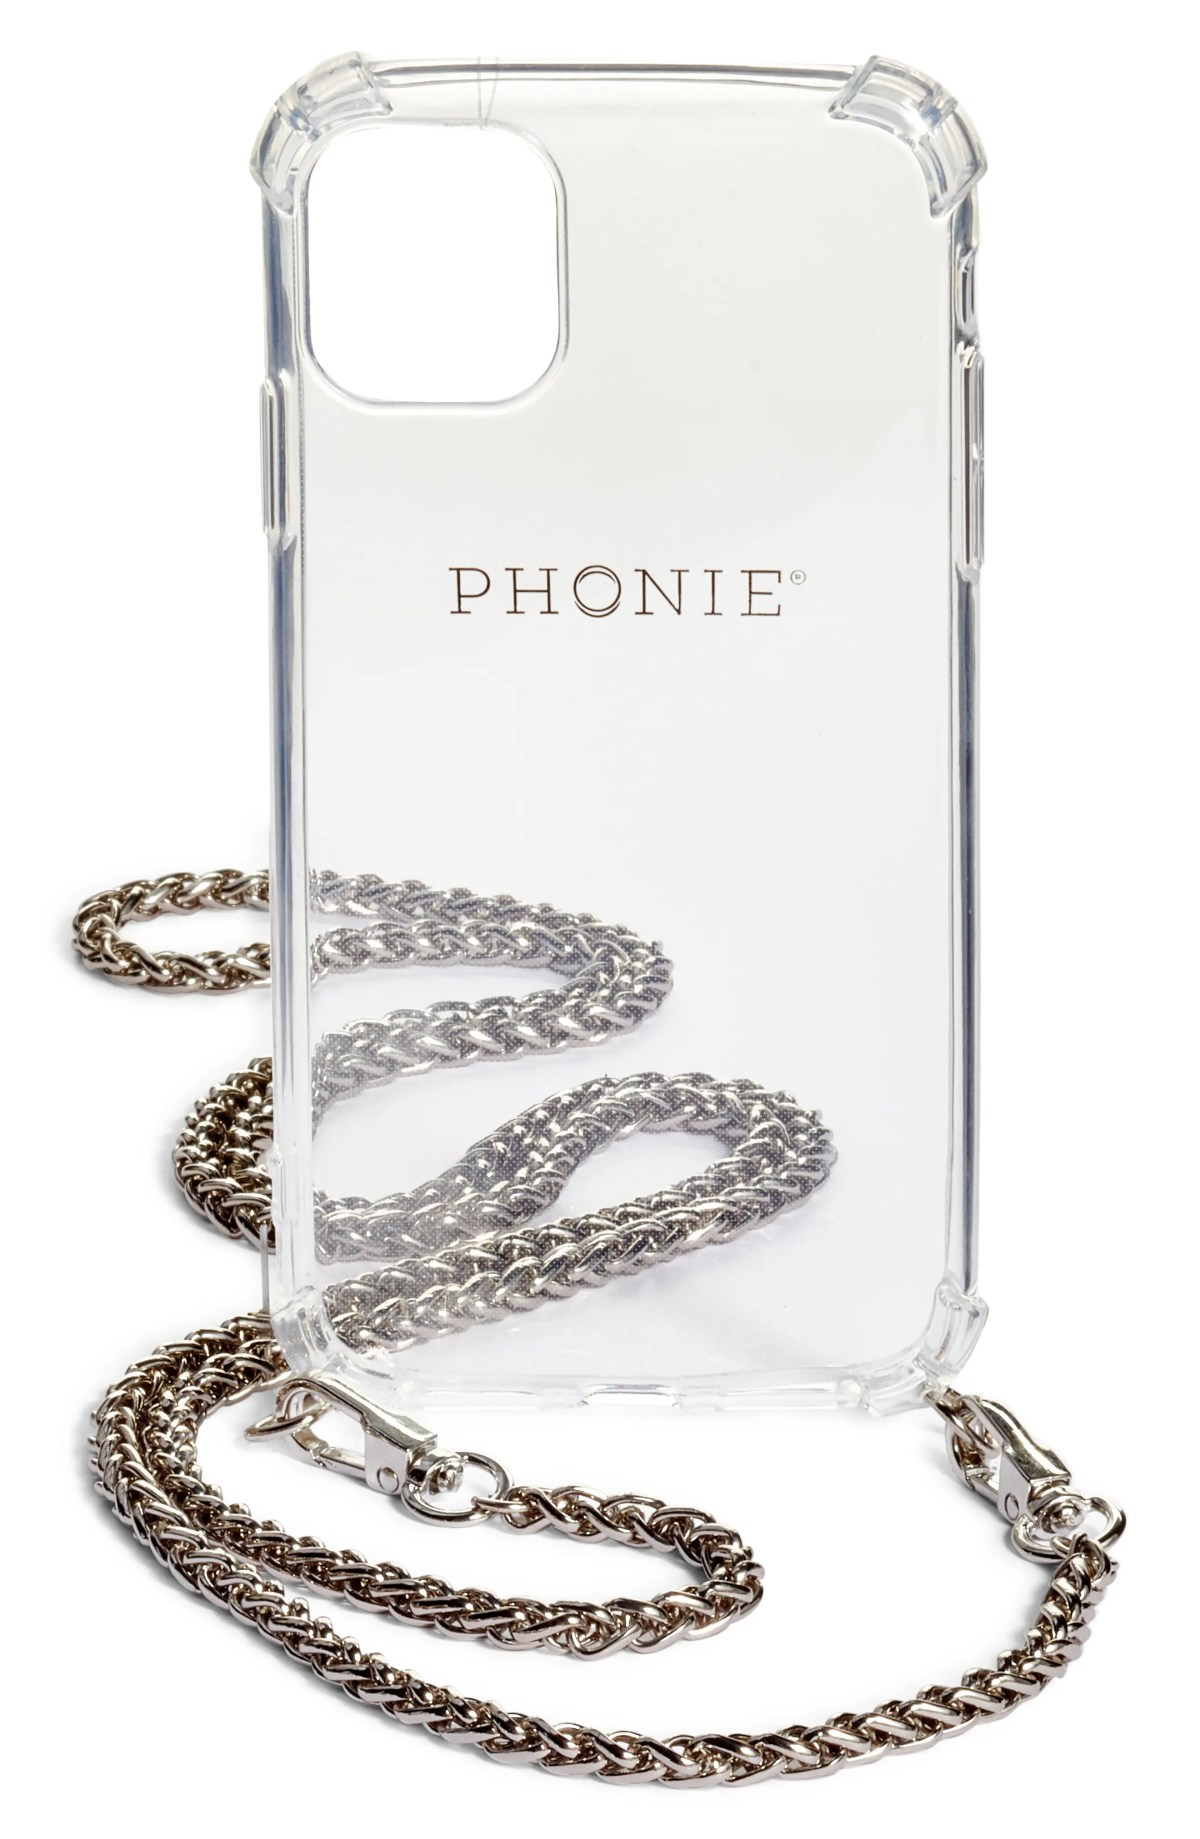 PHONIE Jenny Crossbody iPhone 11 Pro Max Case with Necklace Chain, Main, color, SILVER